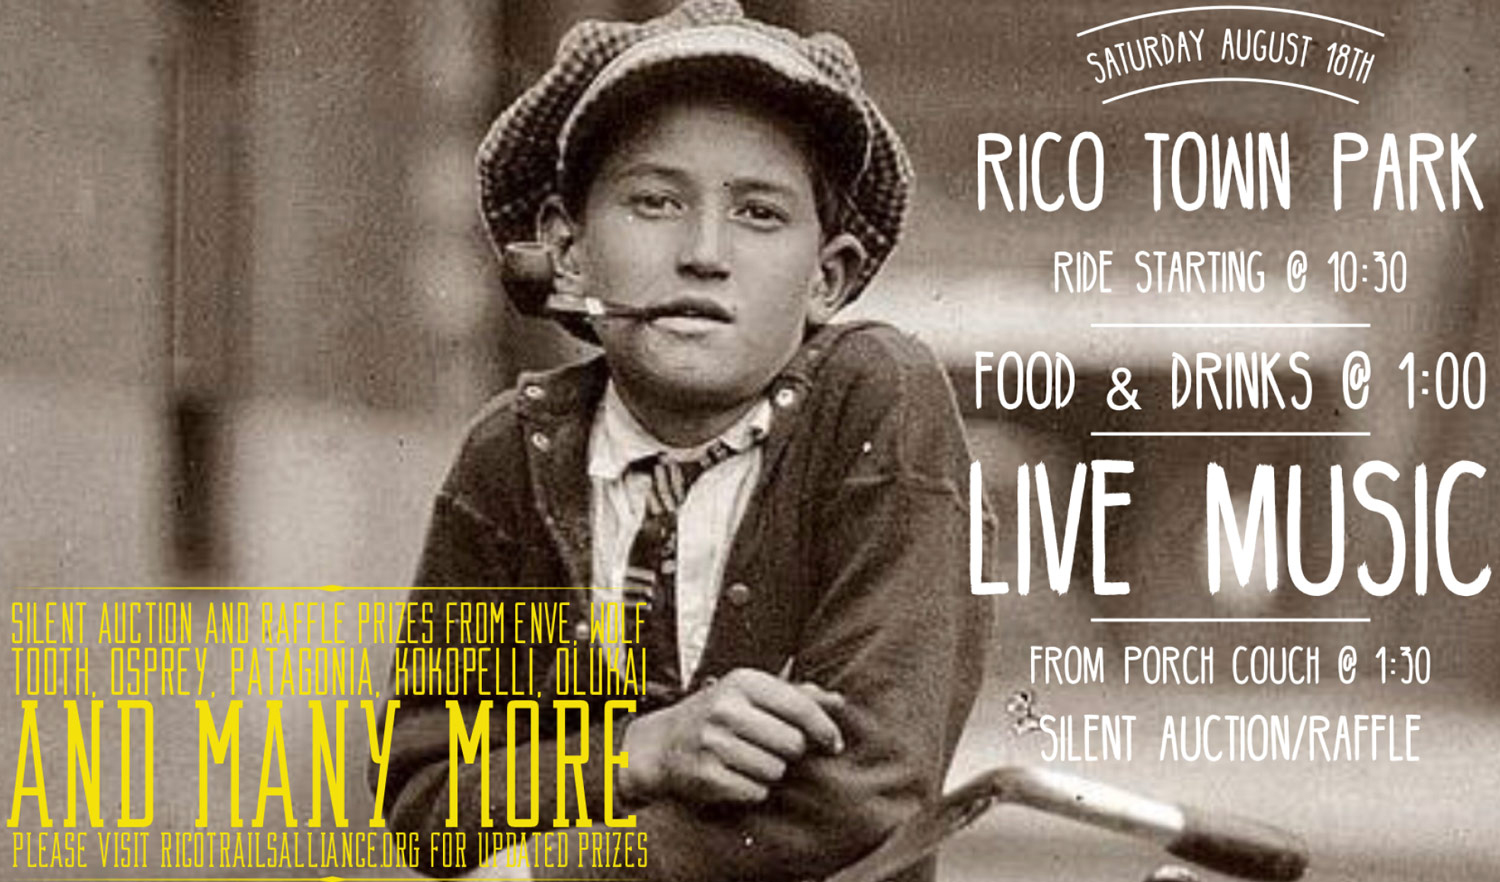 2nd Annual RTA Summer Ride & Fundraiser on August 18th - Rico Trails